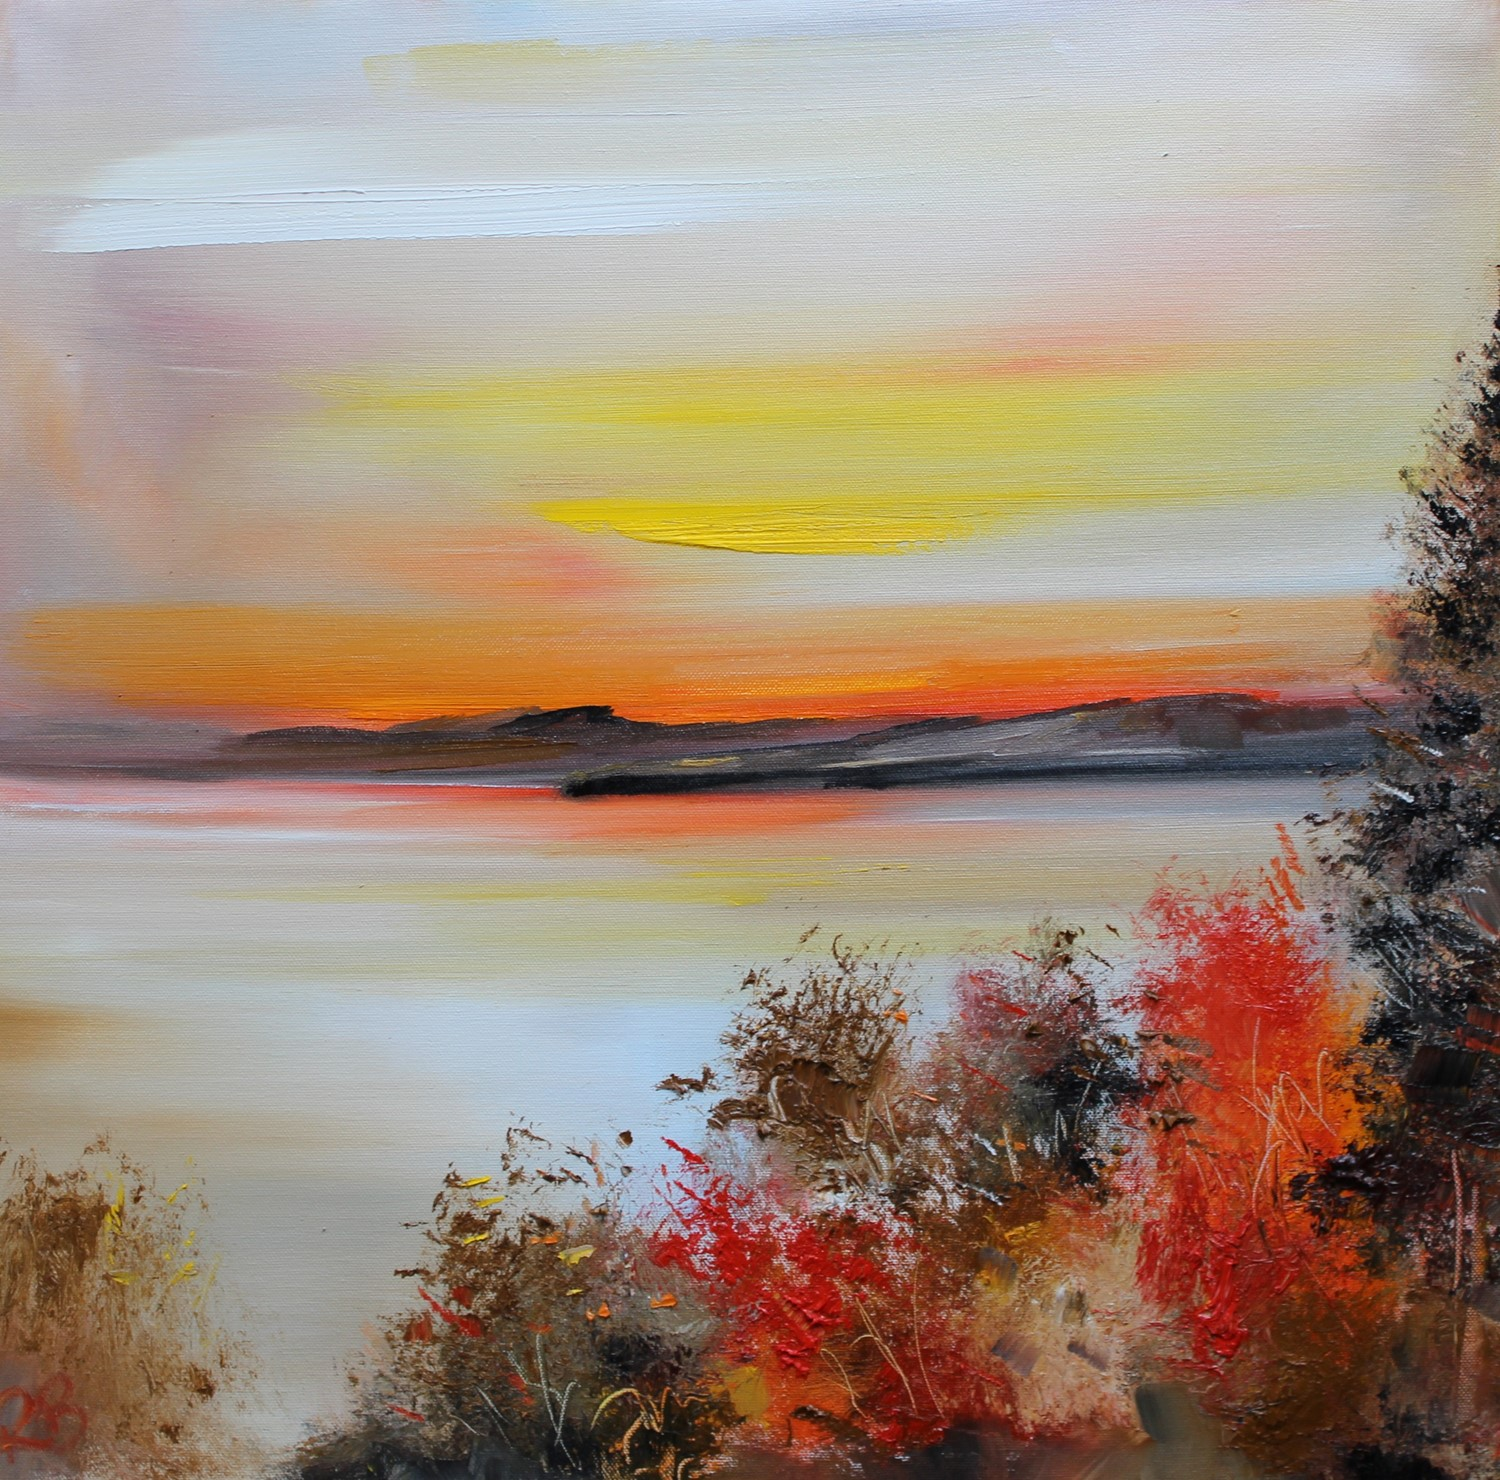 'All Still at Sunset' by artist Rosanne Barr